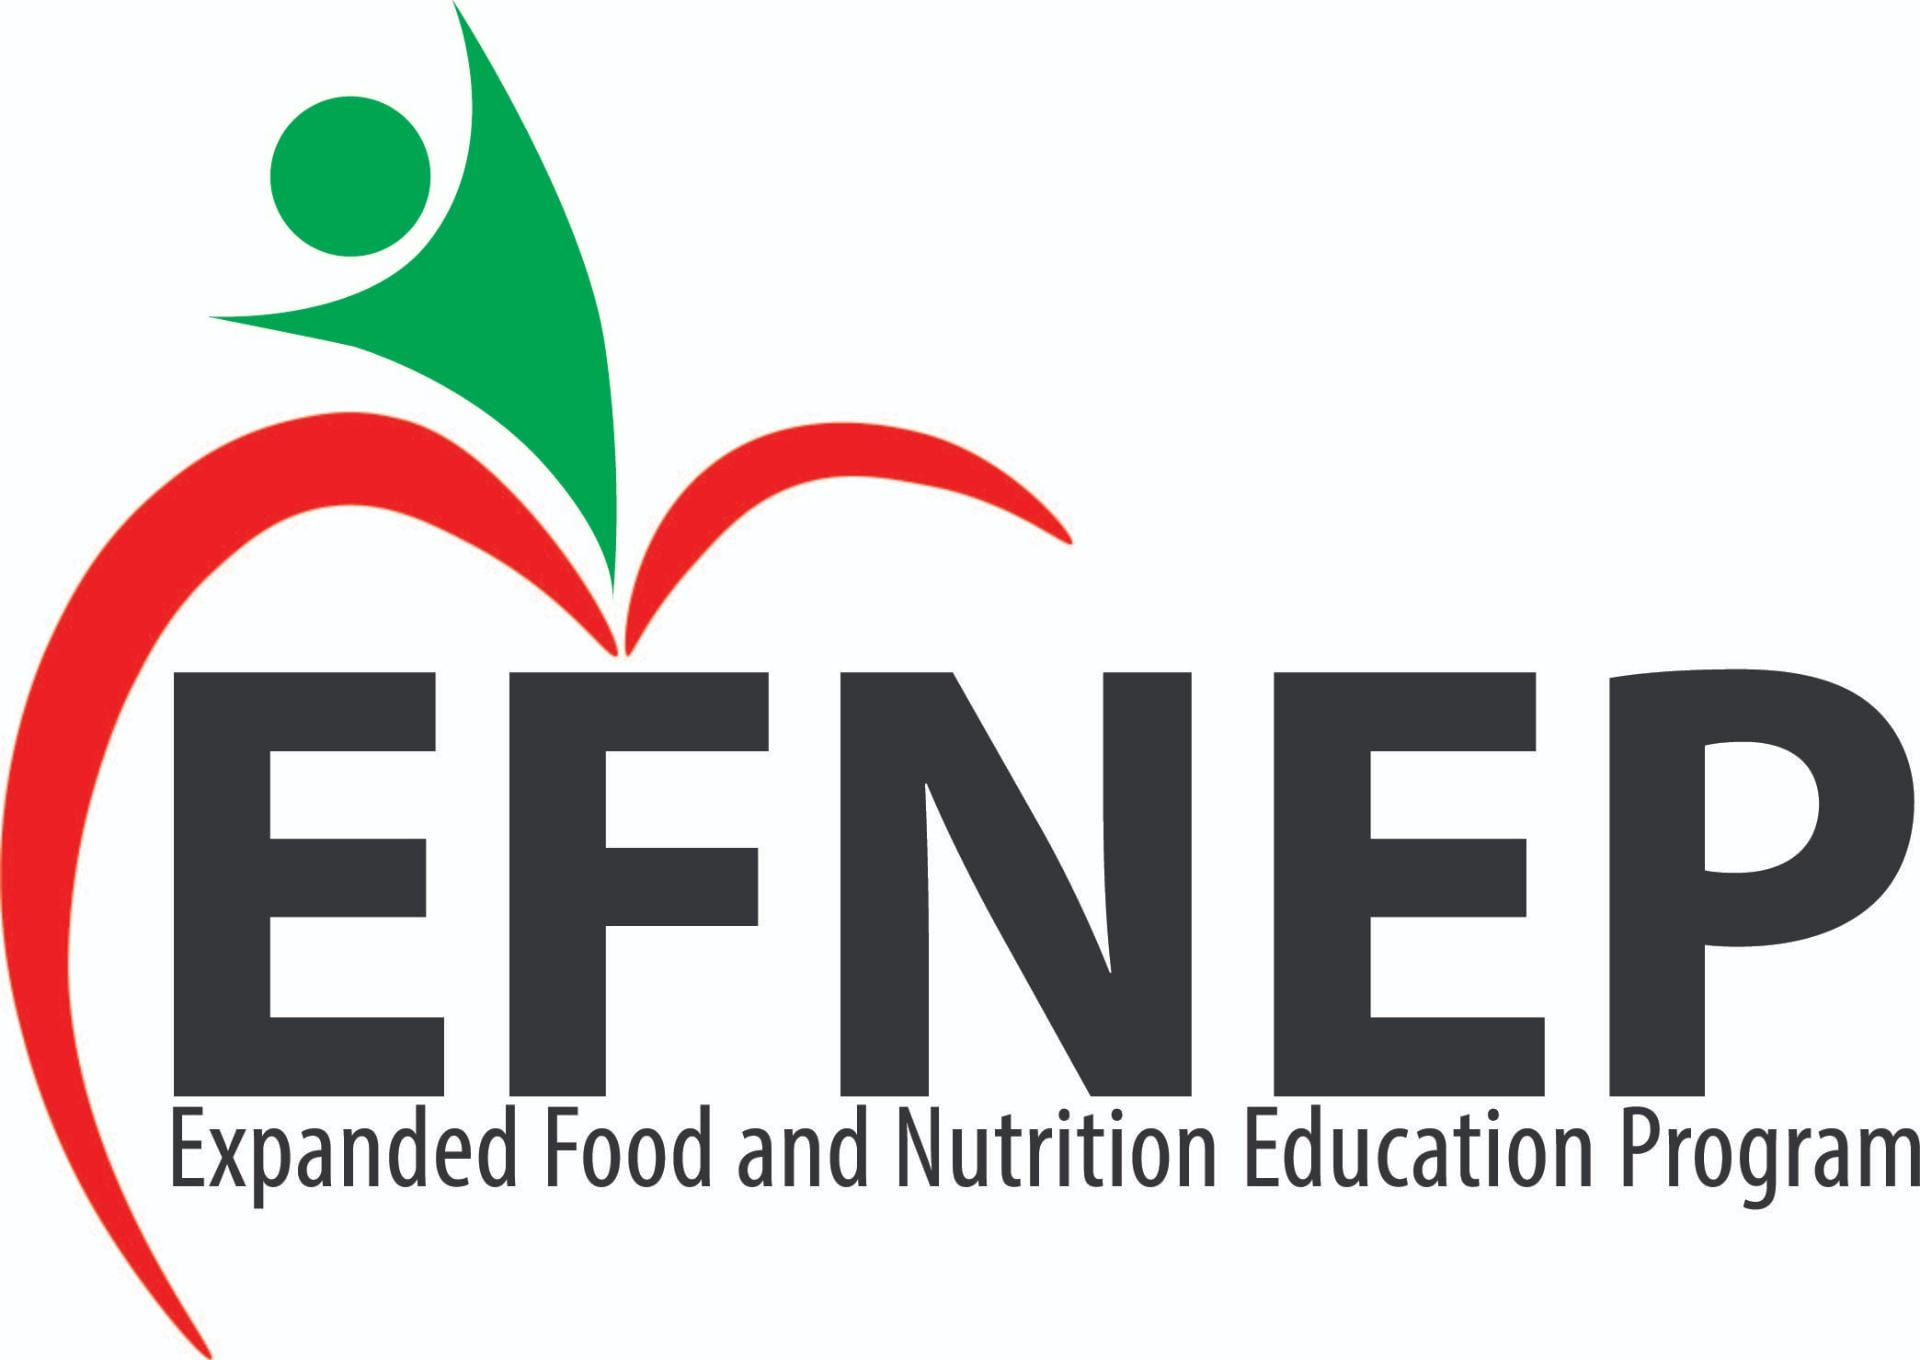 EFNEP (Expanded Food and Nutrition Education Program) logo